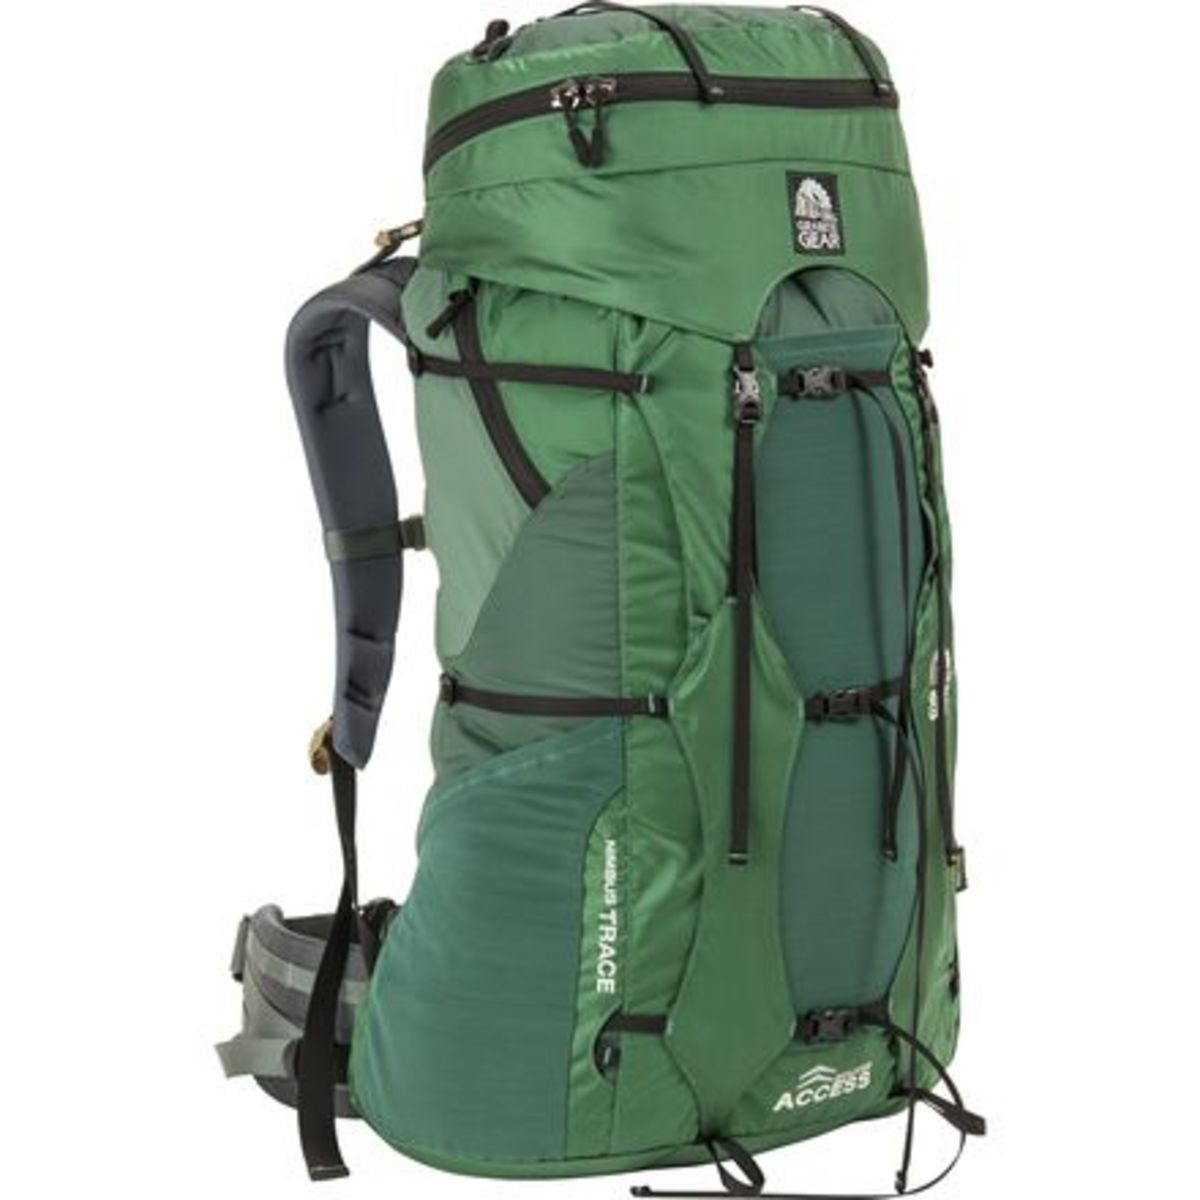 Granite Gear pack on sale for 50% off.